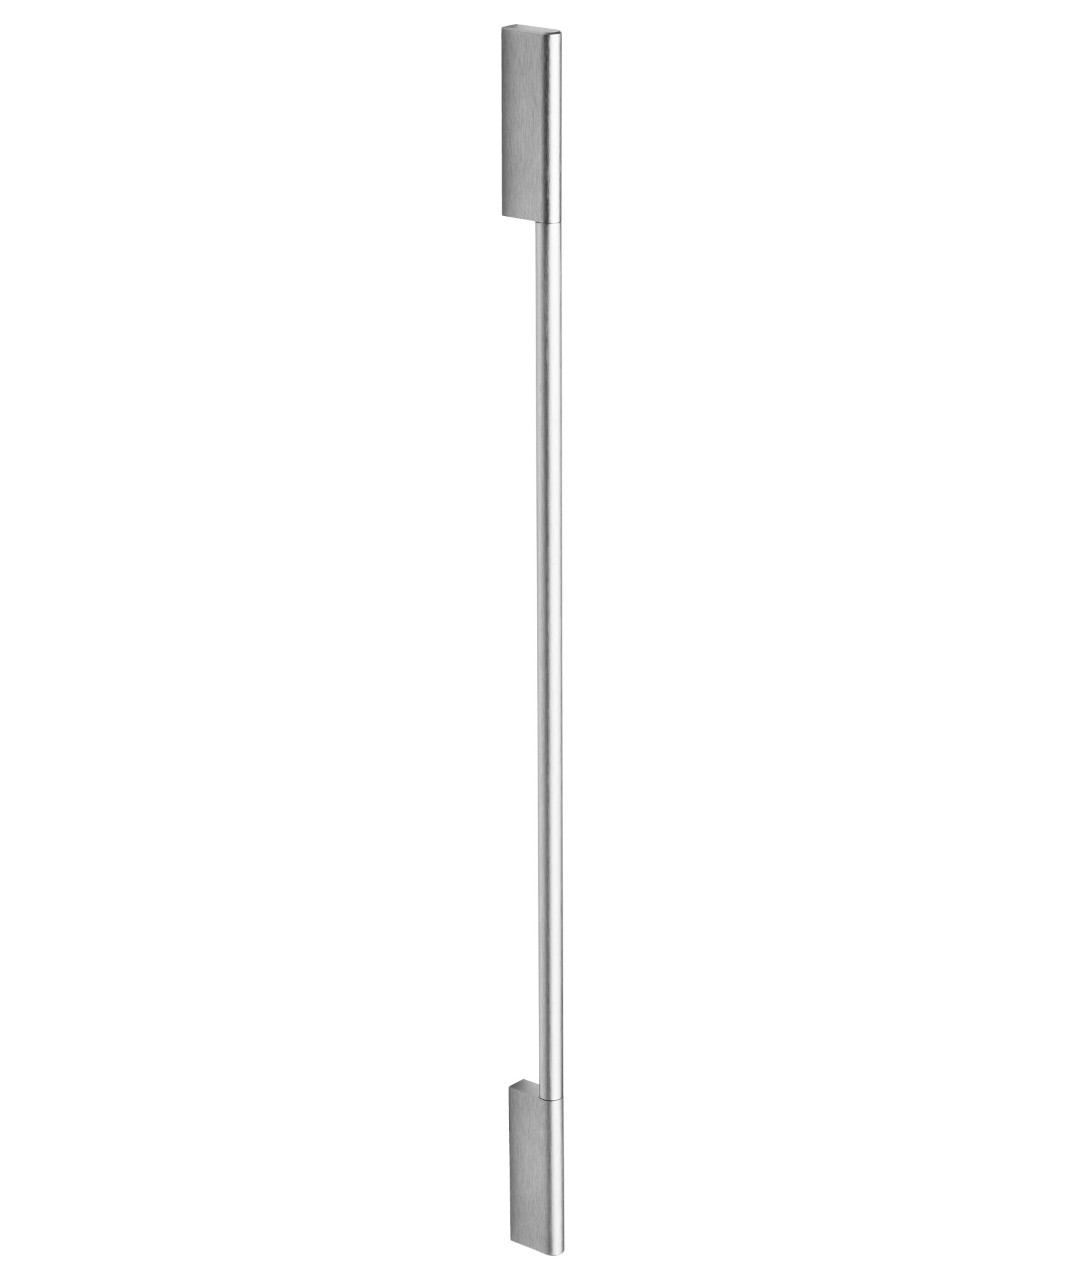 Model: 24981   Fisher and Paykel Contemporary Round Handle Kit for Integrated Column Refrigerator or Freezer, All widths